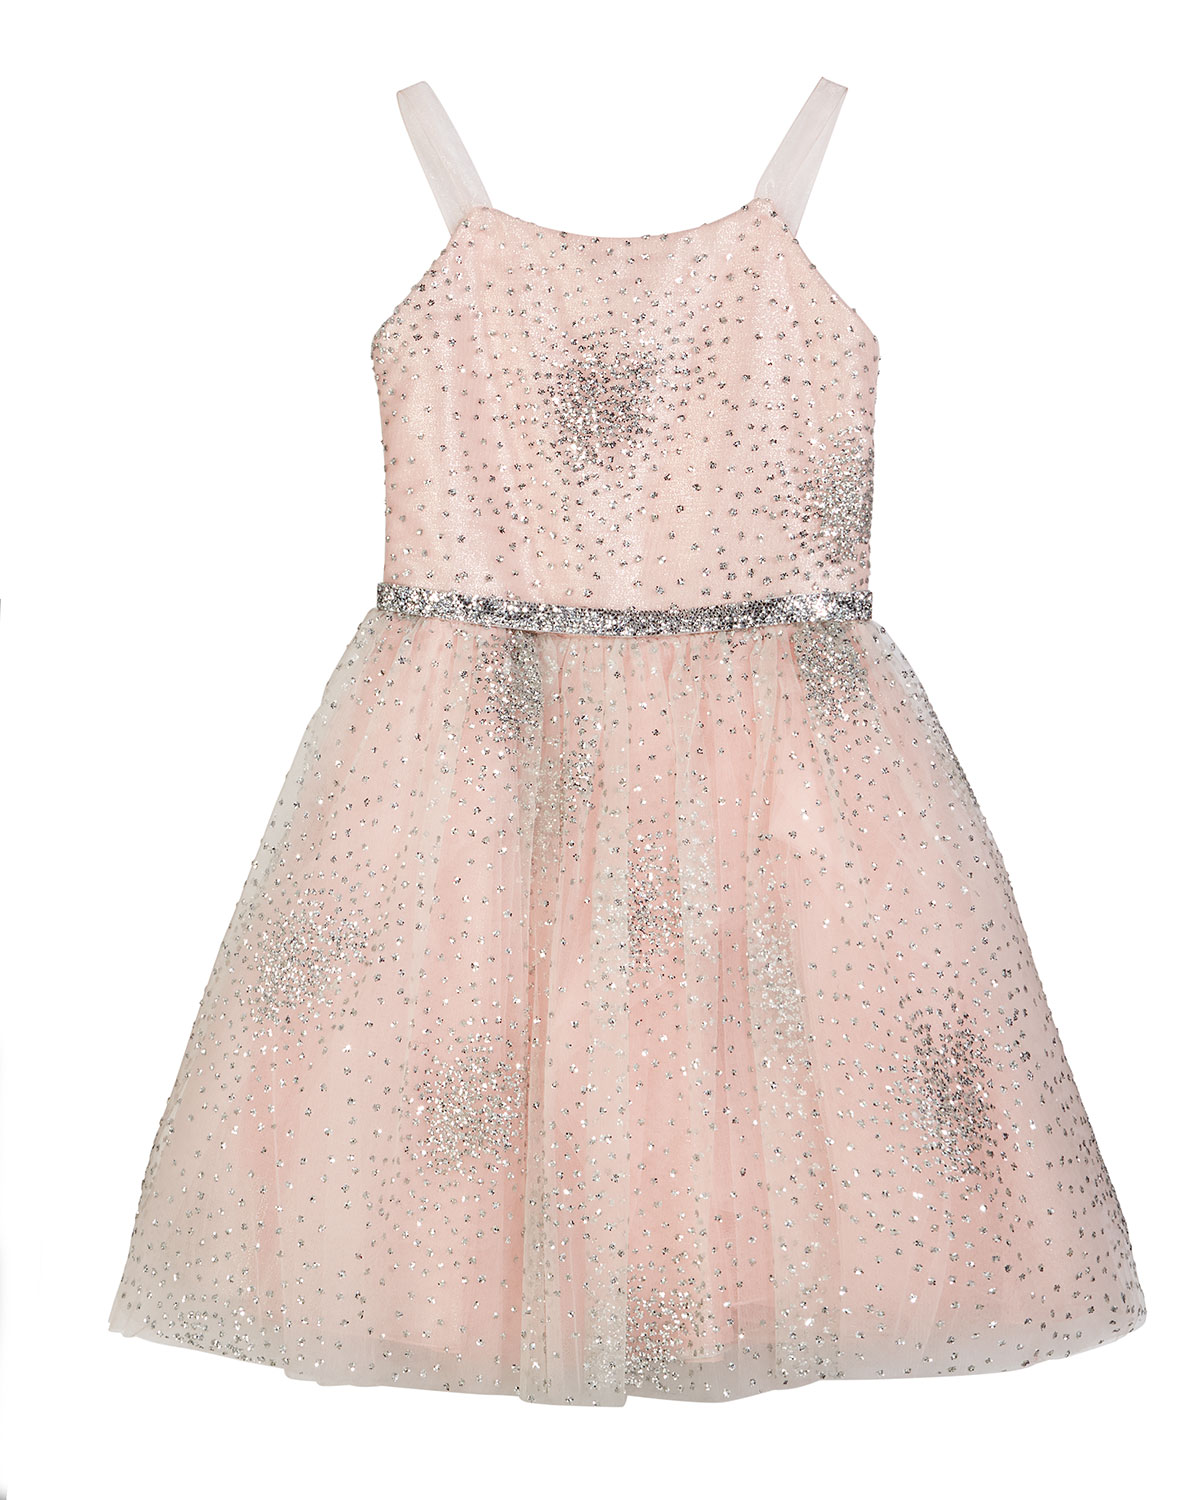 Amelia Sparkle Tulle Party Dress